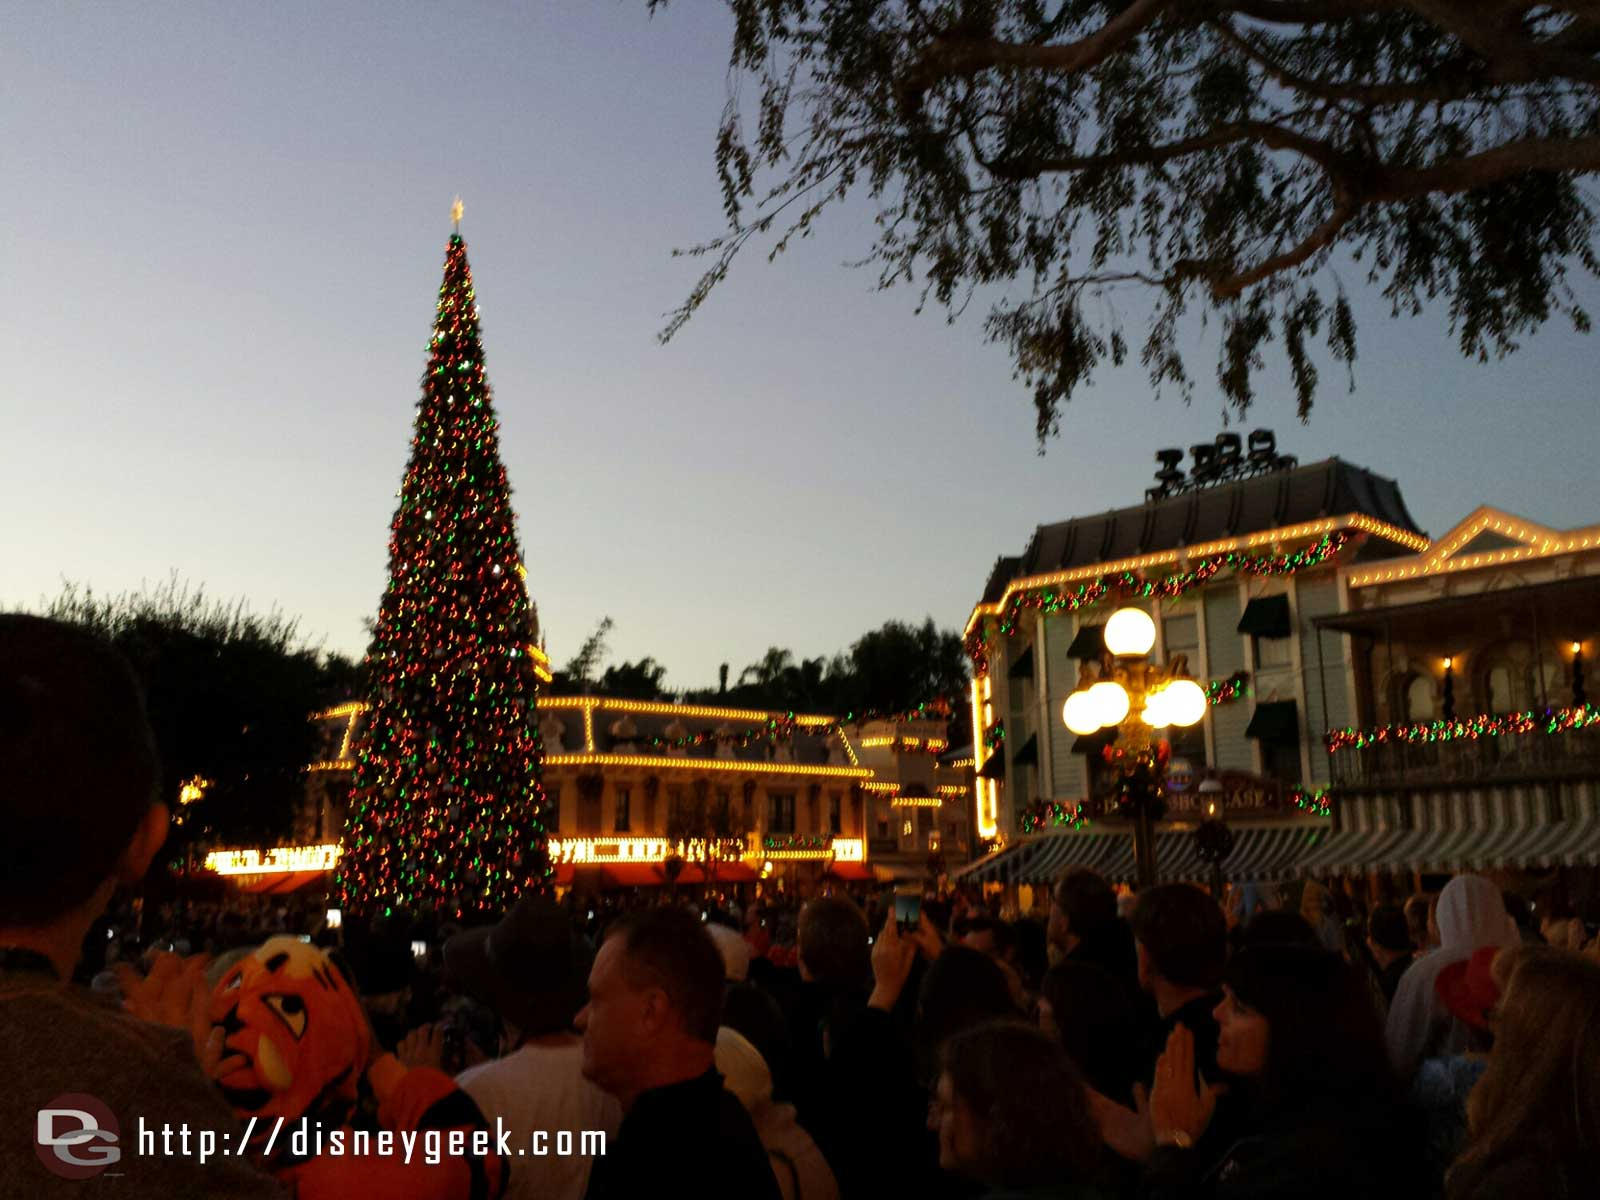 The Town Square Christmas Tree Lighting moment was at 5:00pm #Disneyland